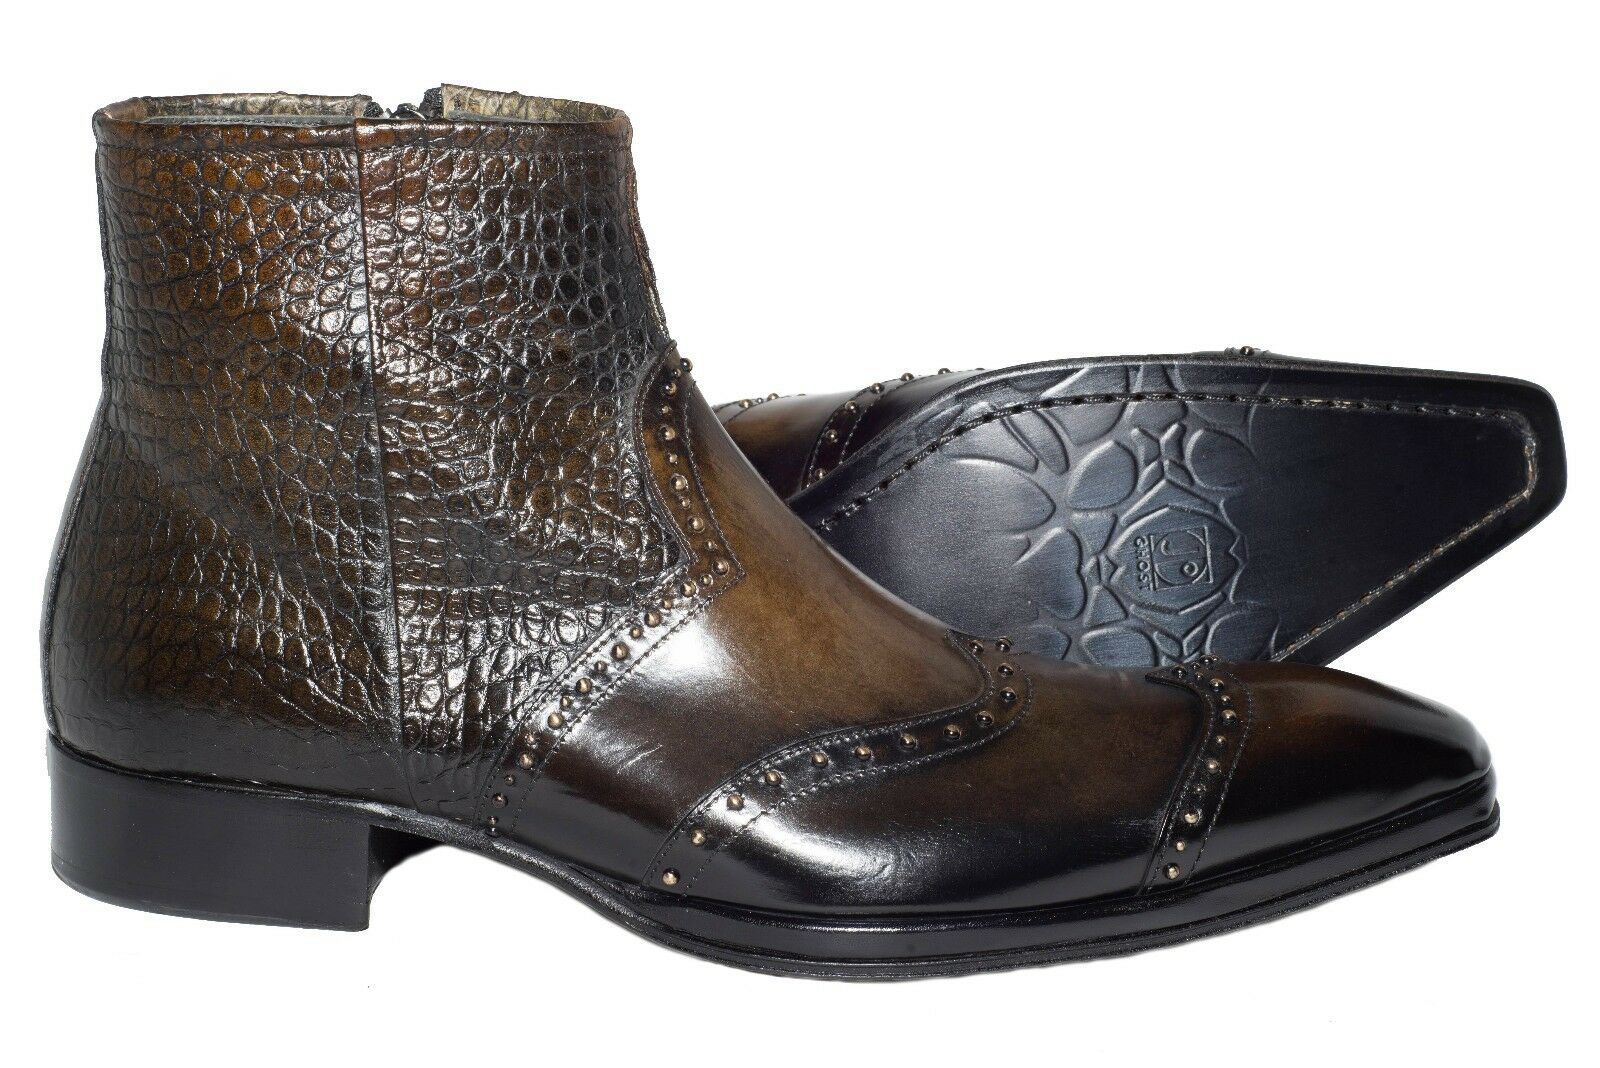 Jo Ghost 740 Italian mens brown/olive ankle boots with metal studs, zipper